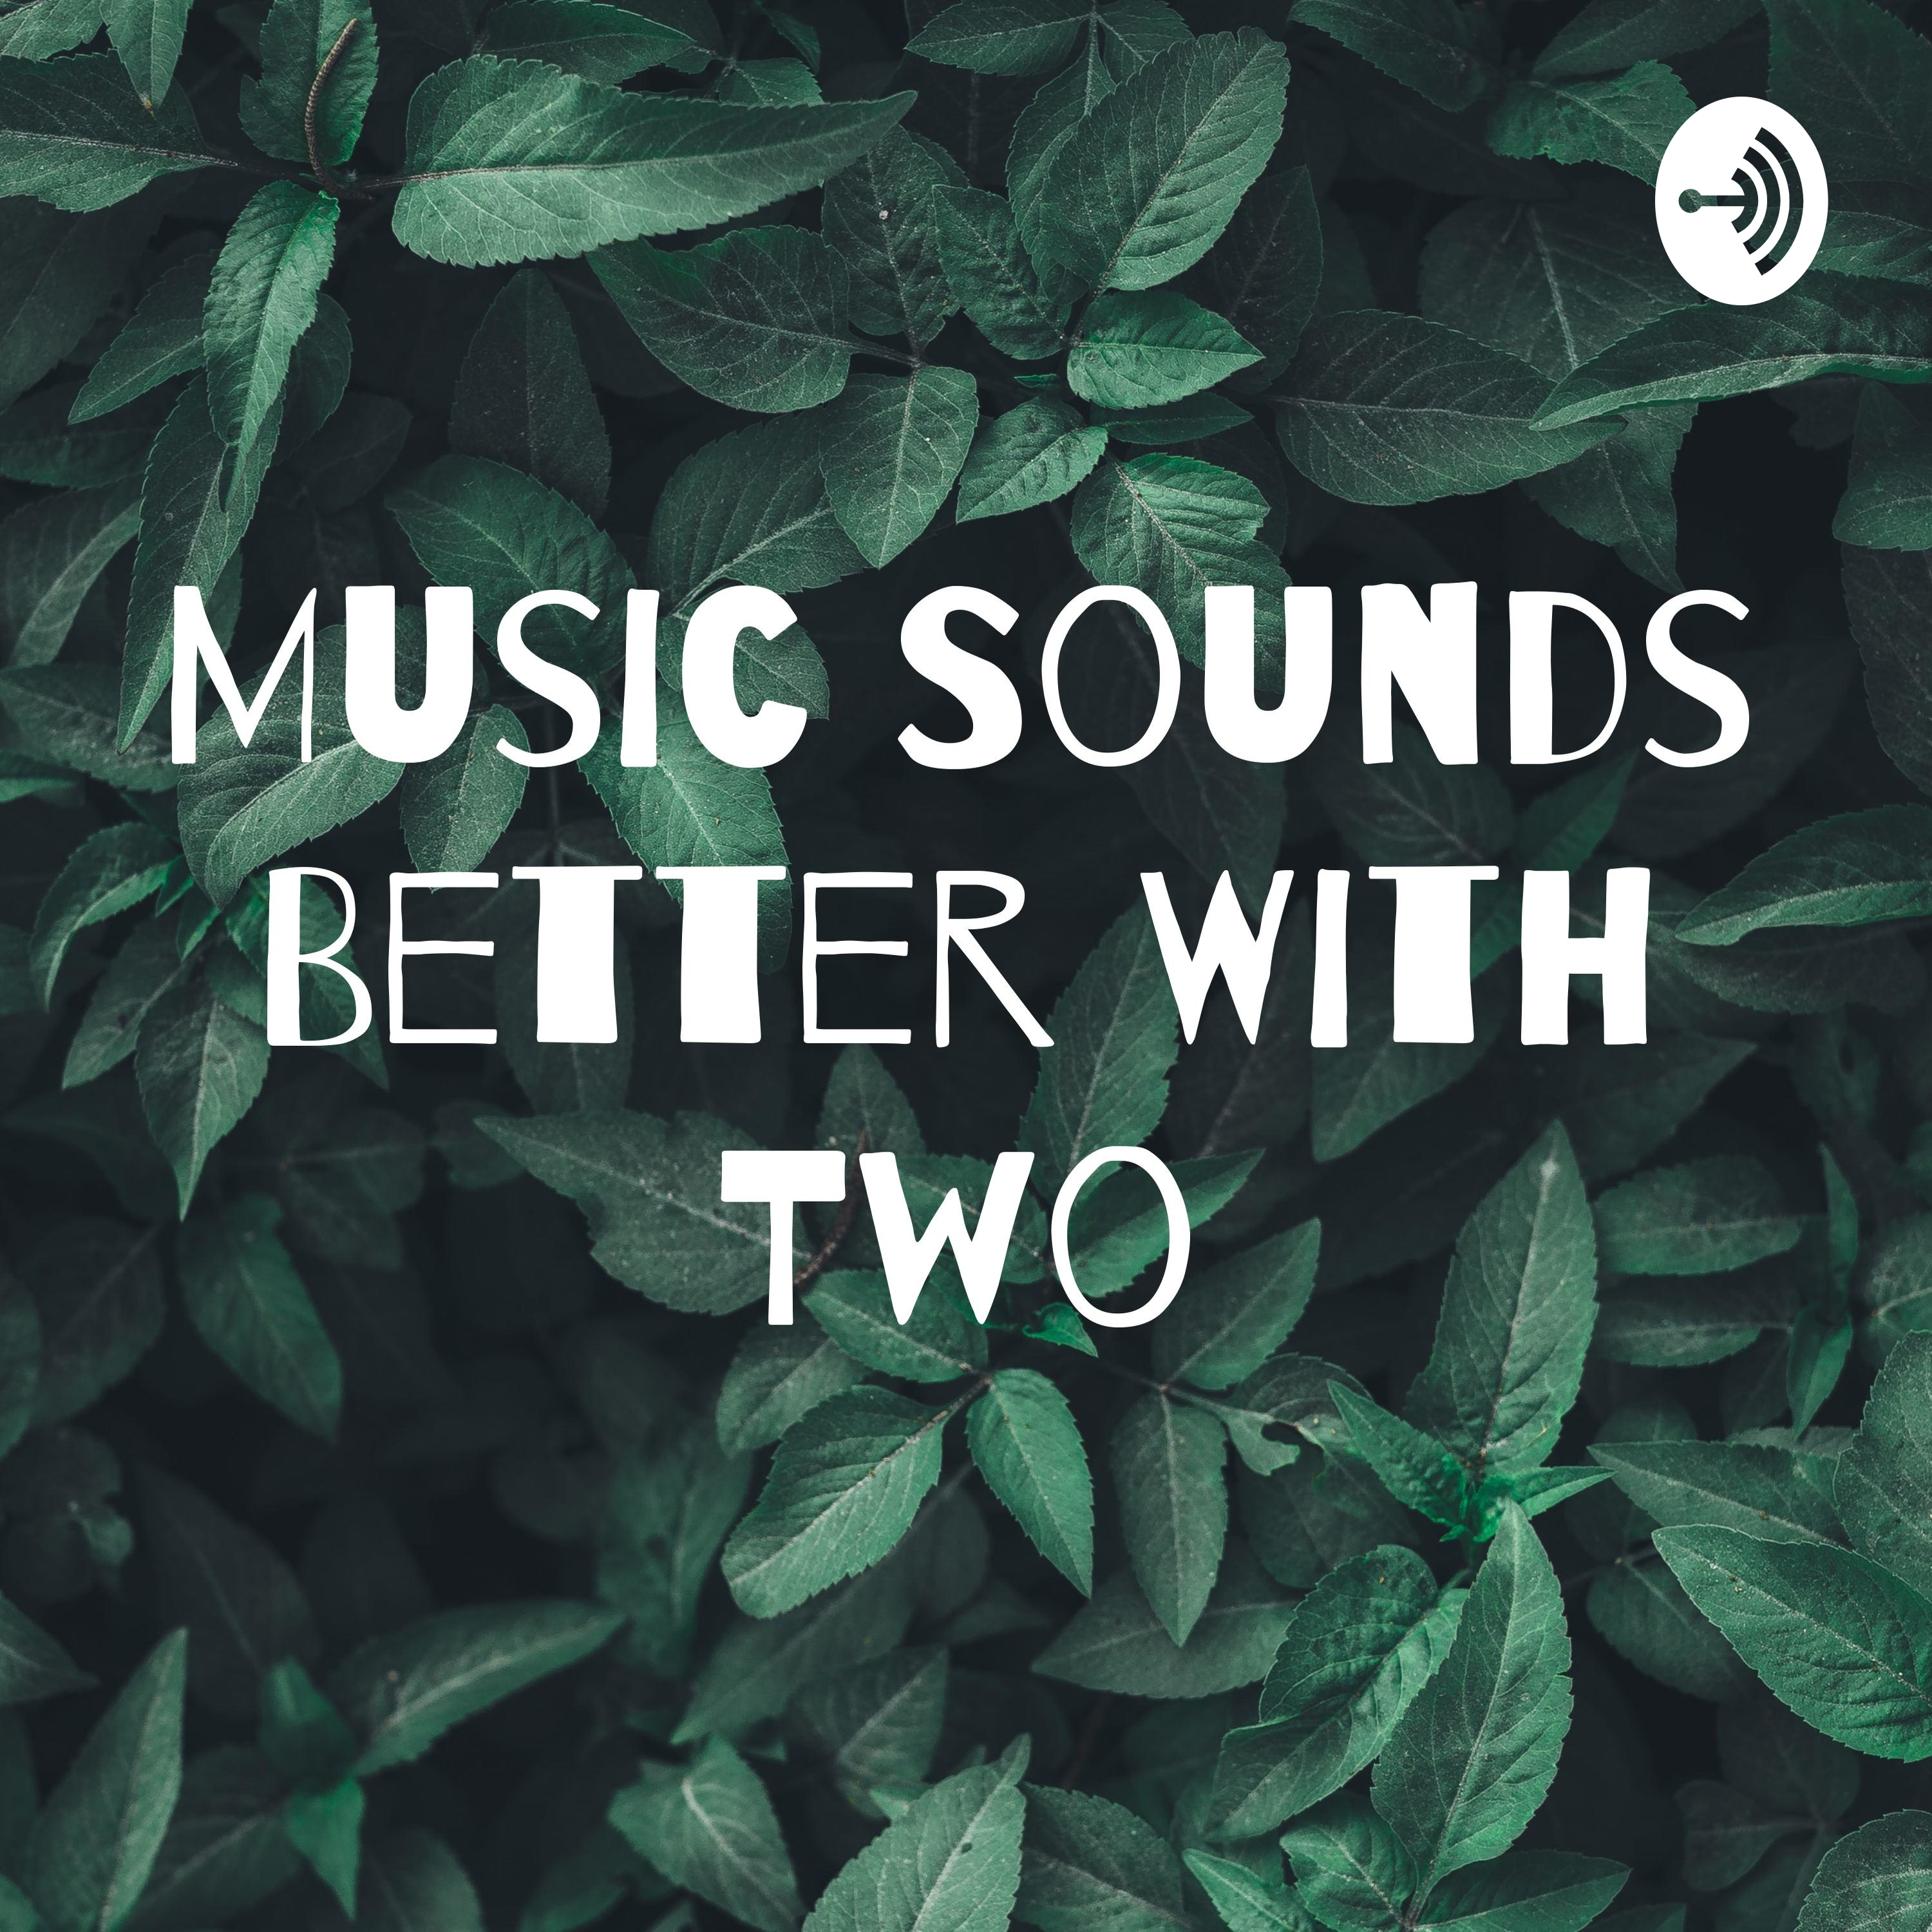 Music Sounds Better With Two